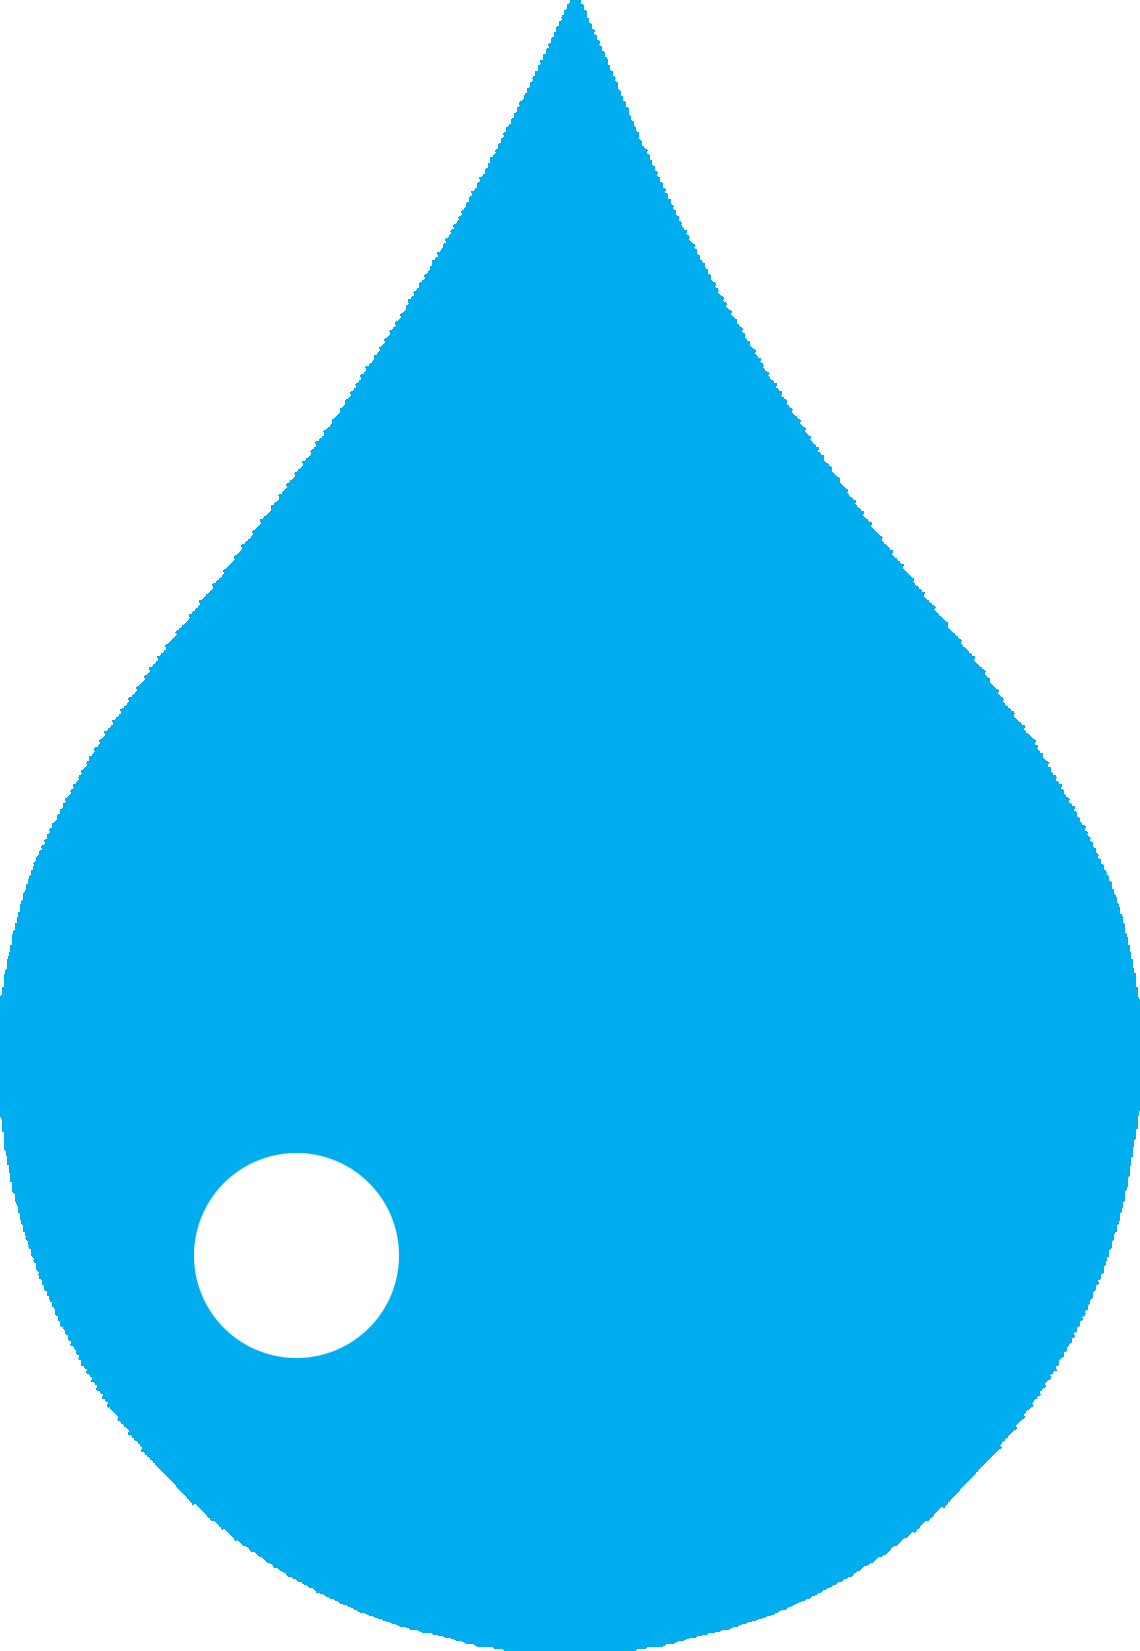 Access and consumption prevention. Environment clipart potable water